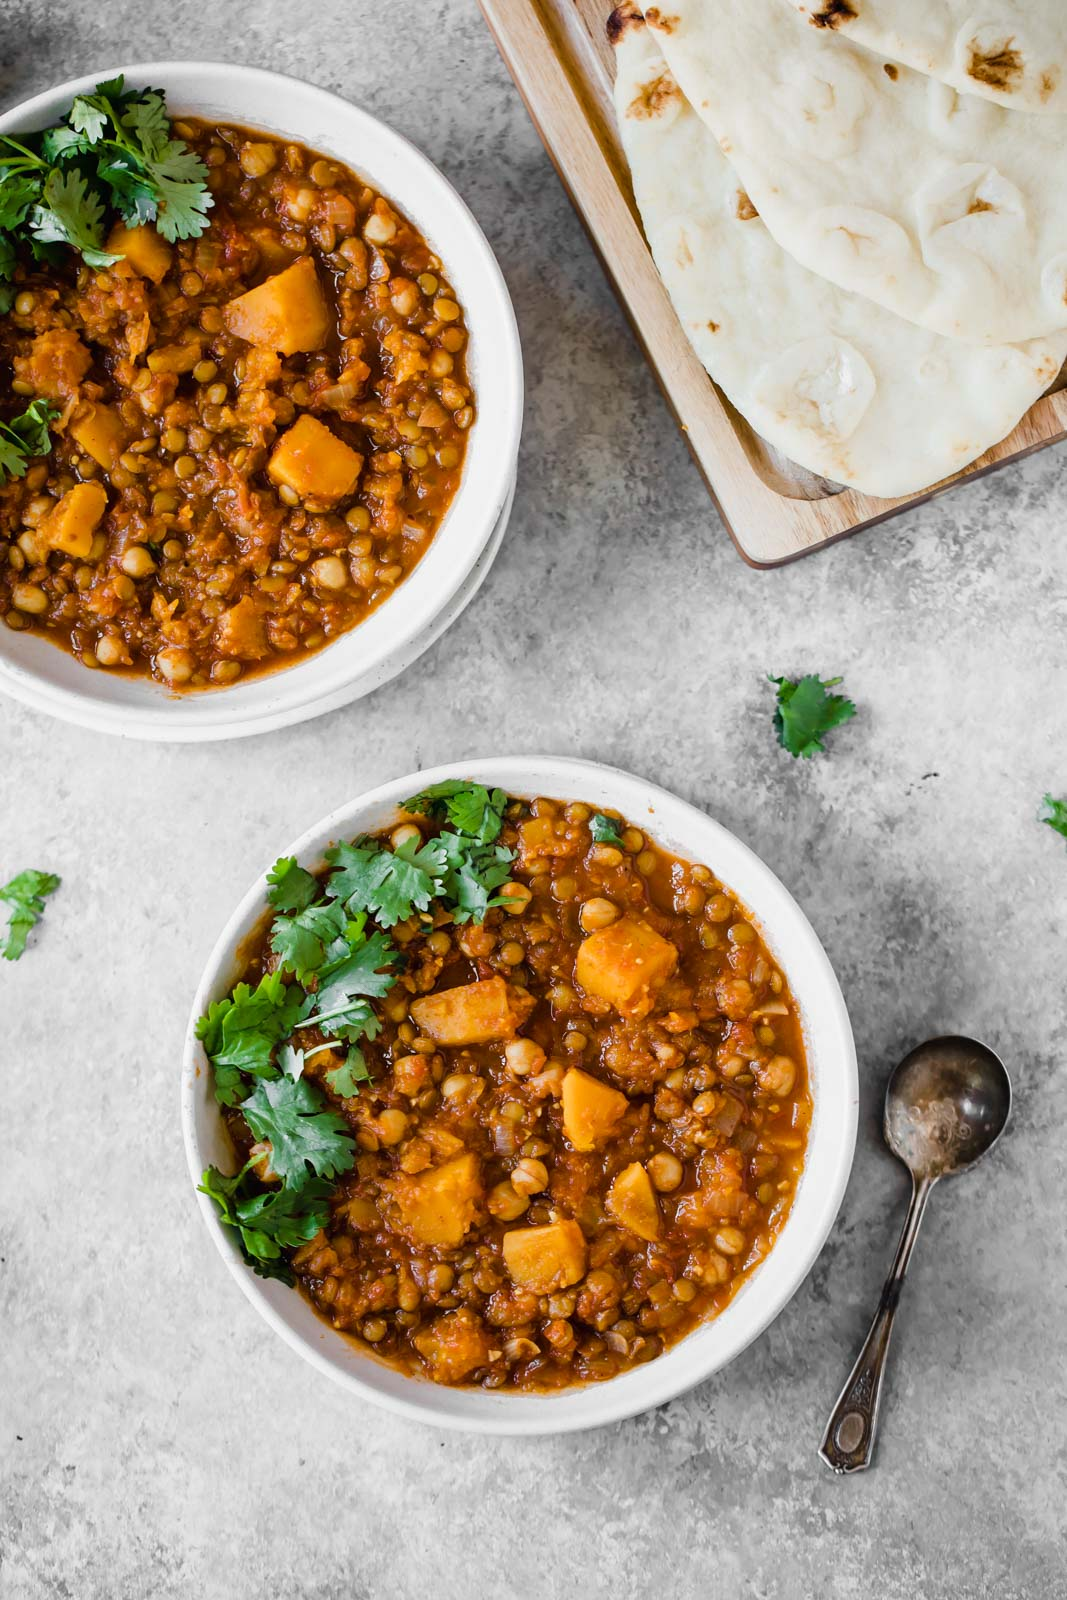 moroccan stew in two bowls topped with cilantro next to a sheet of naan bread